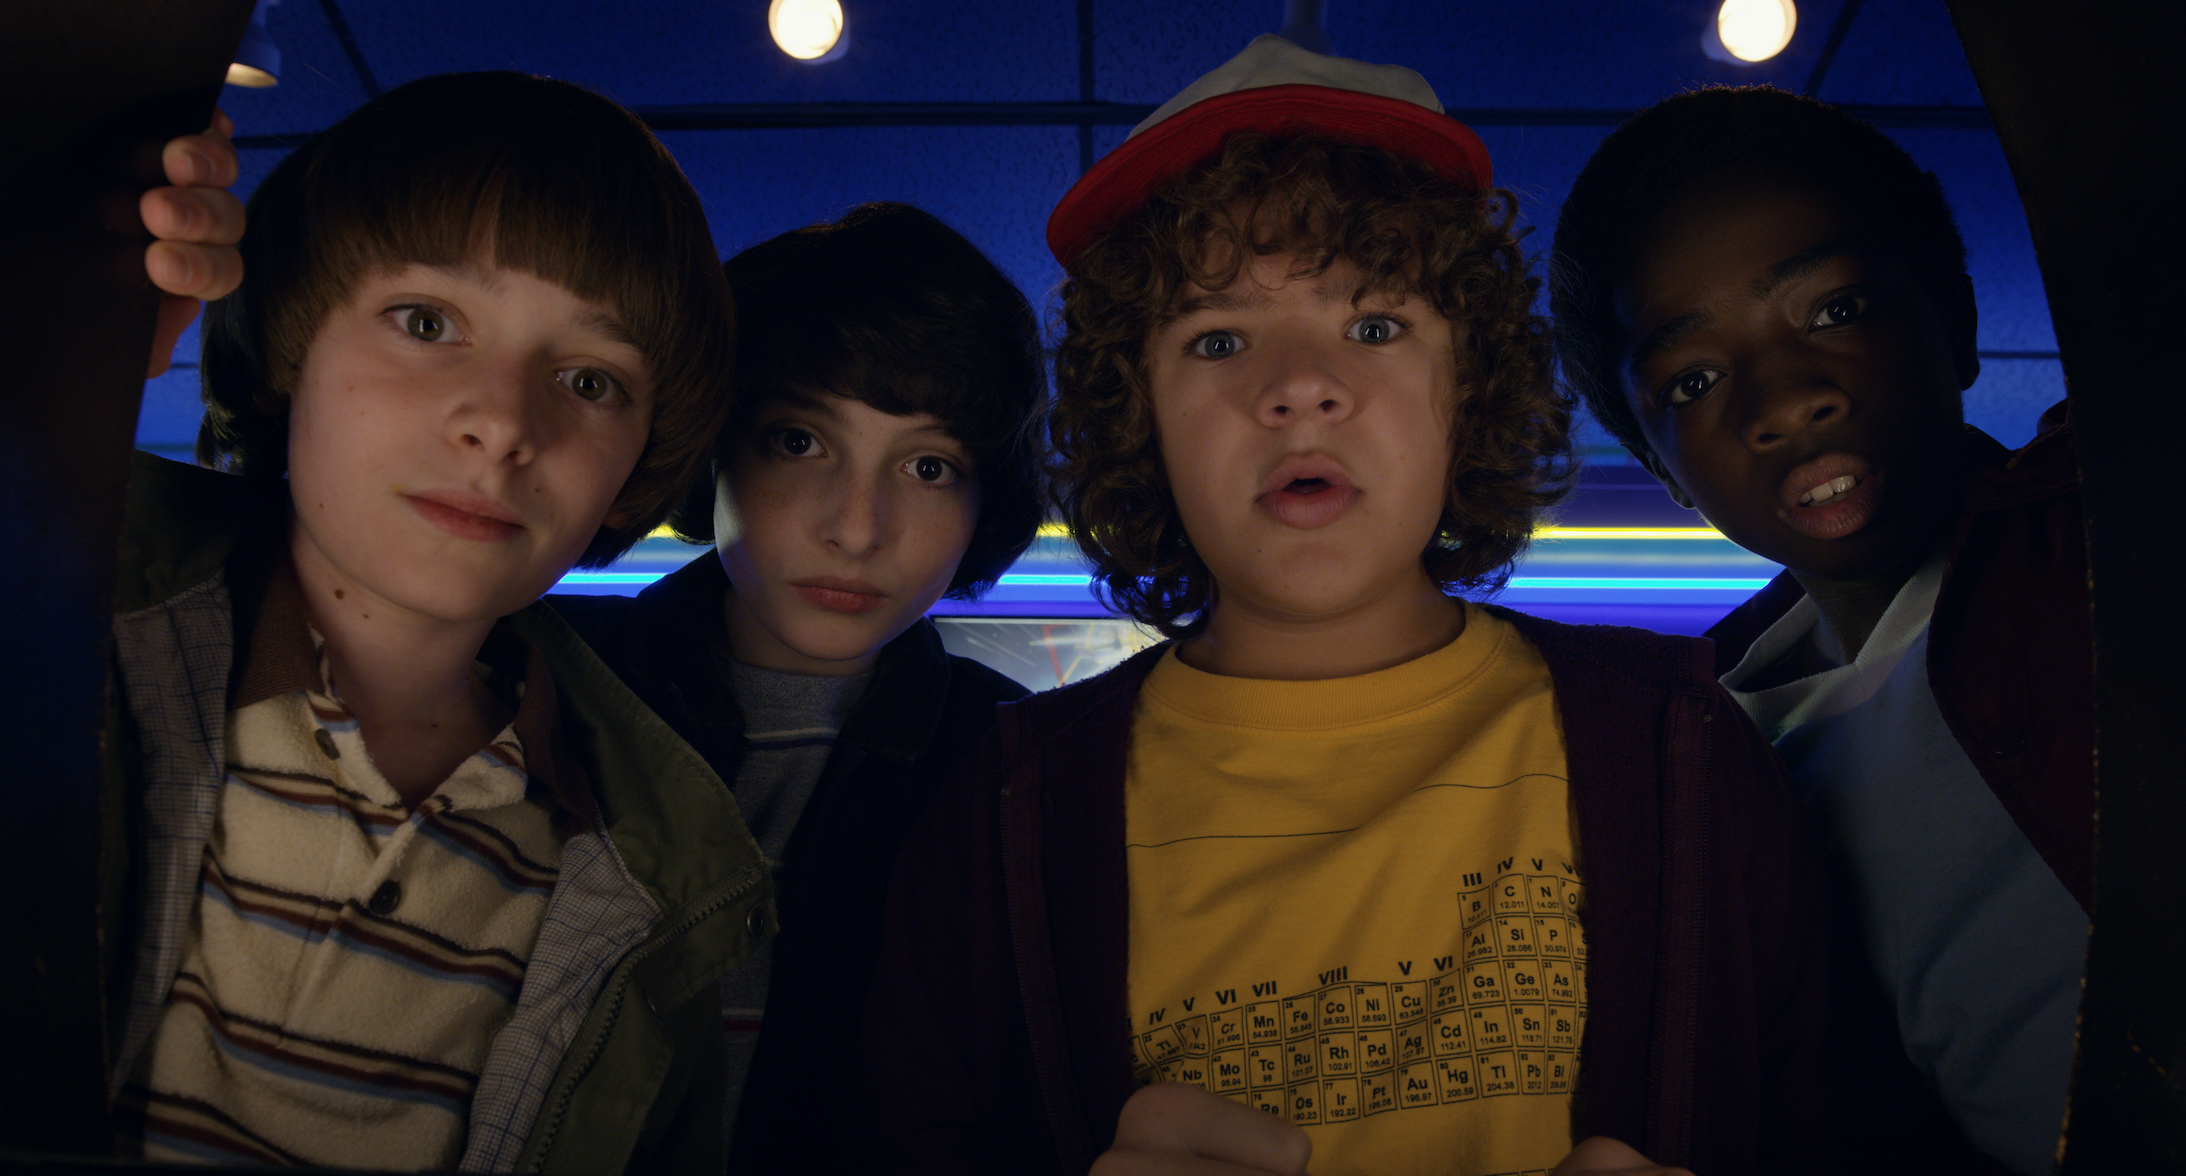 'Stranger Things Season 2' Reviews: Do The New Episodes Live Up To The Hype?